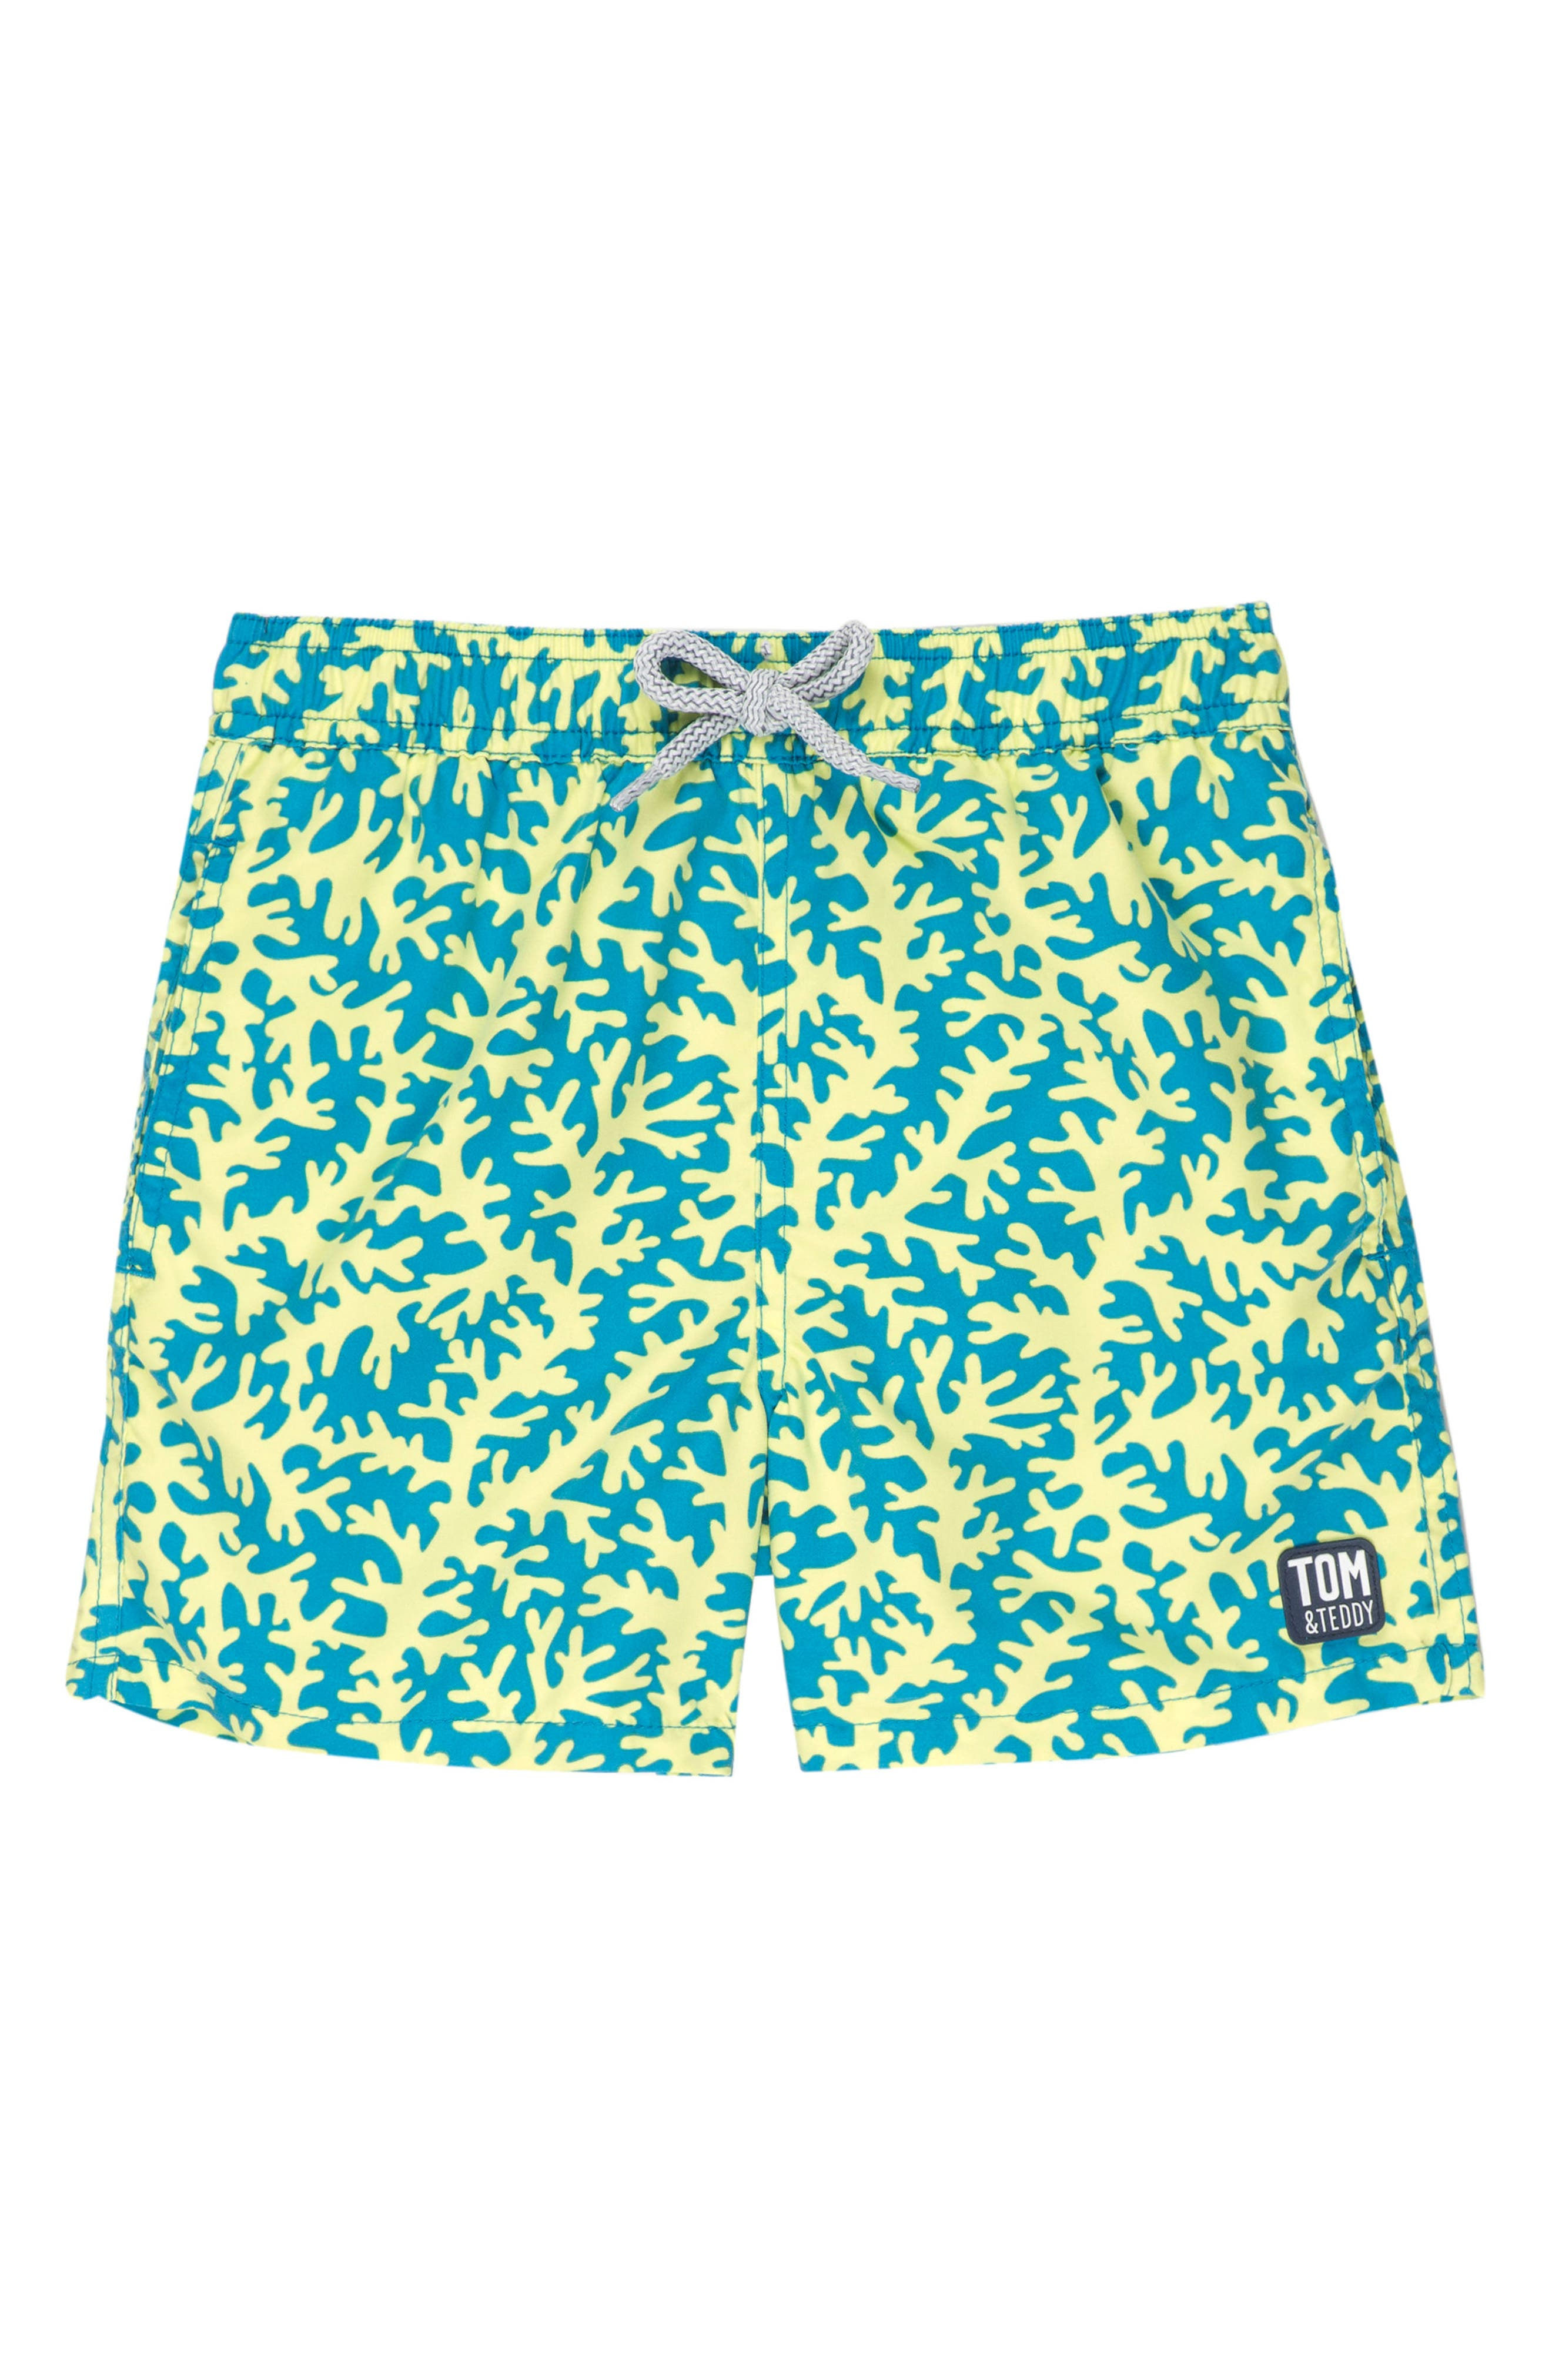 Coral Swim Trunks,                             Main thumbnail 1, color,                             Blue/ Lime